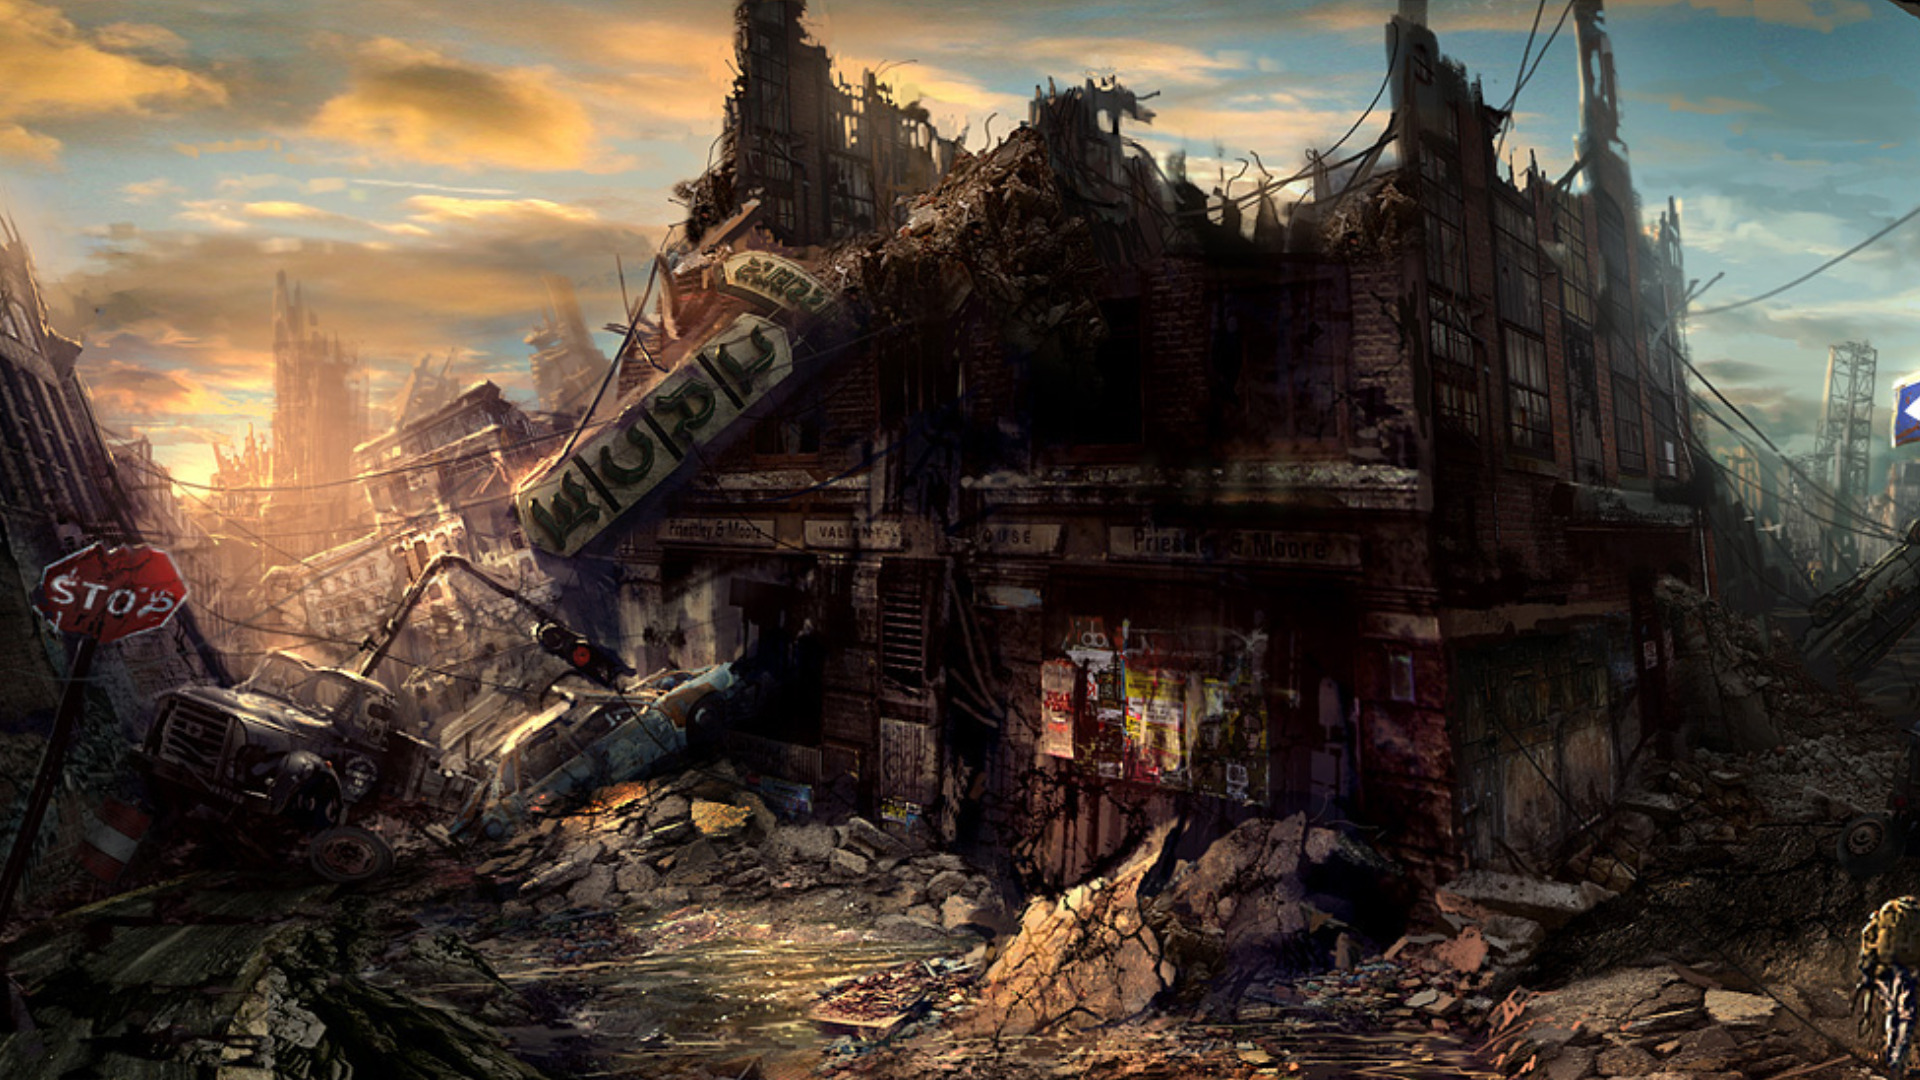 apocalyptic hd wallpaper 2560x1440 - photo #40